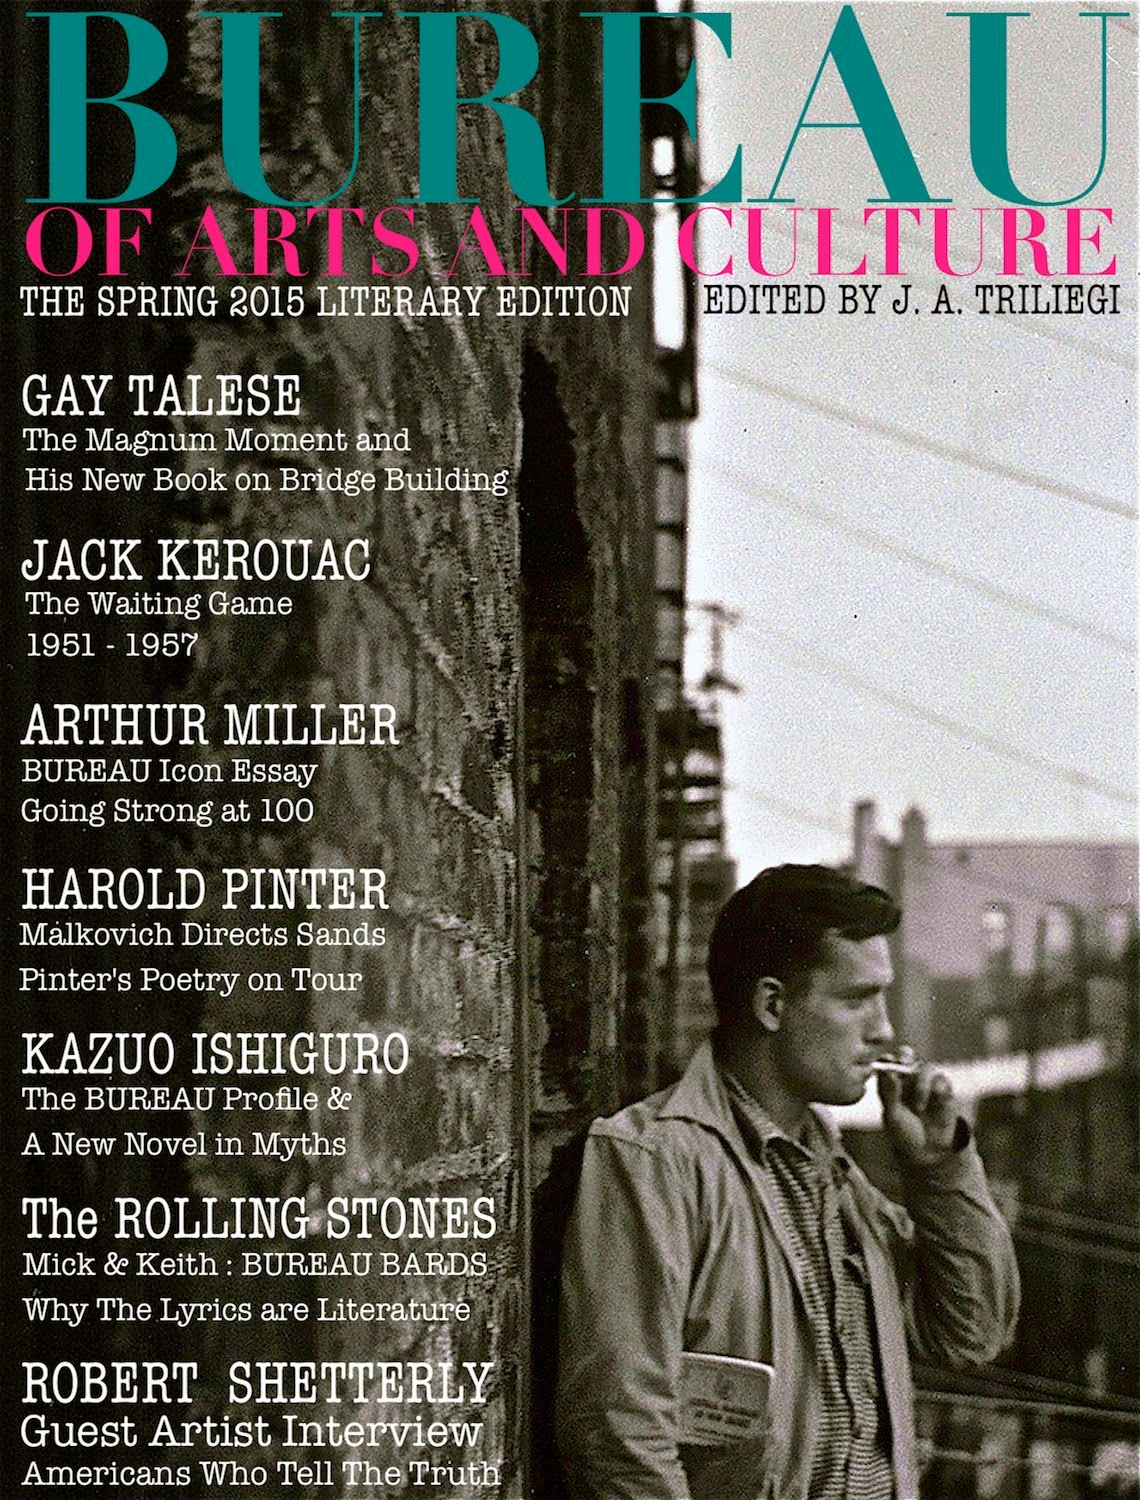 SPRING 2015 LITERARY Edition of BUREAU of ARTS and CULTURE MAGAZINE